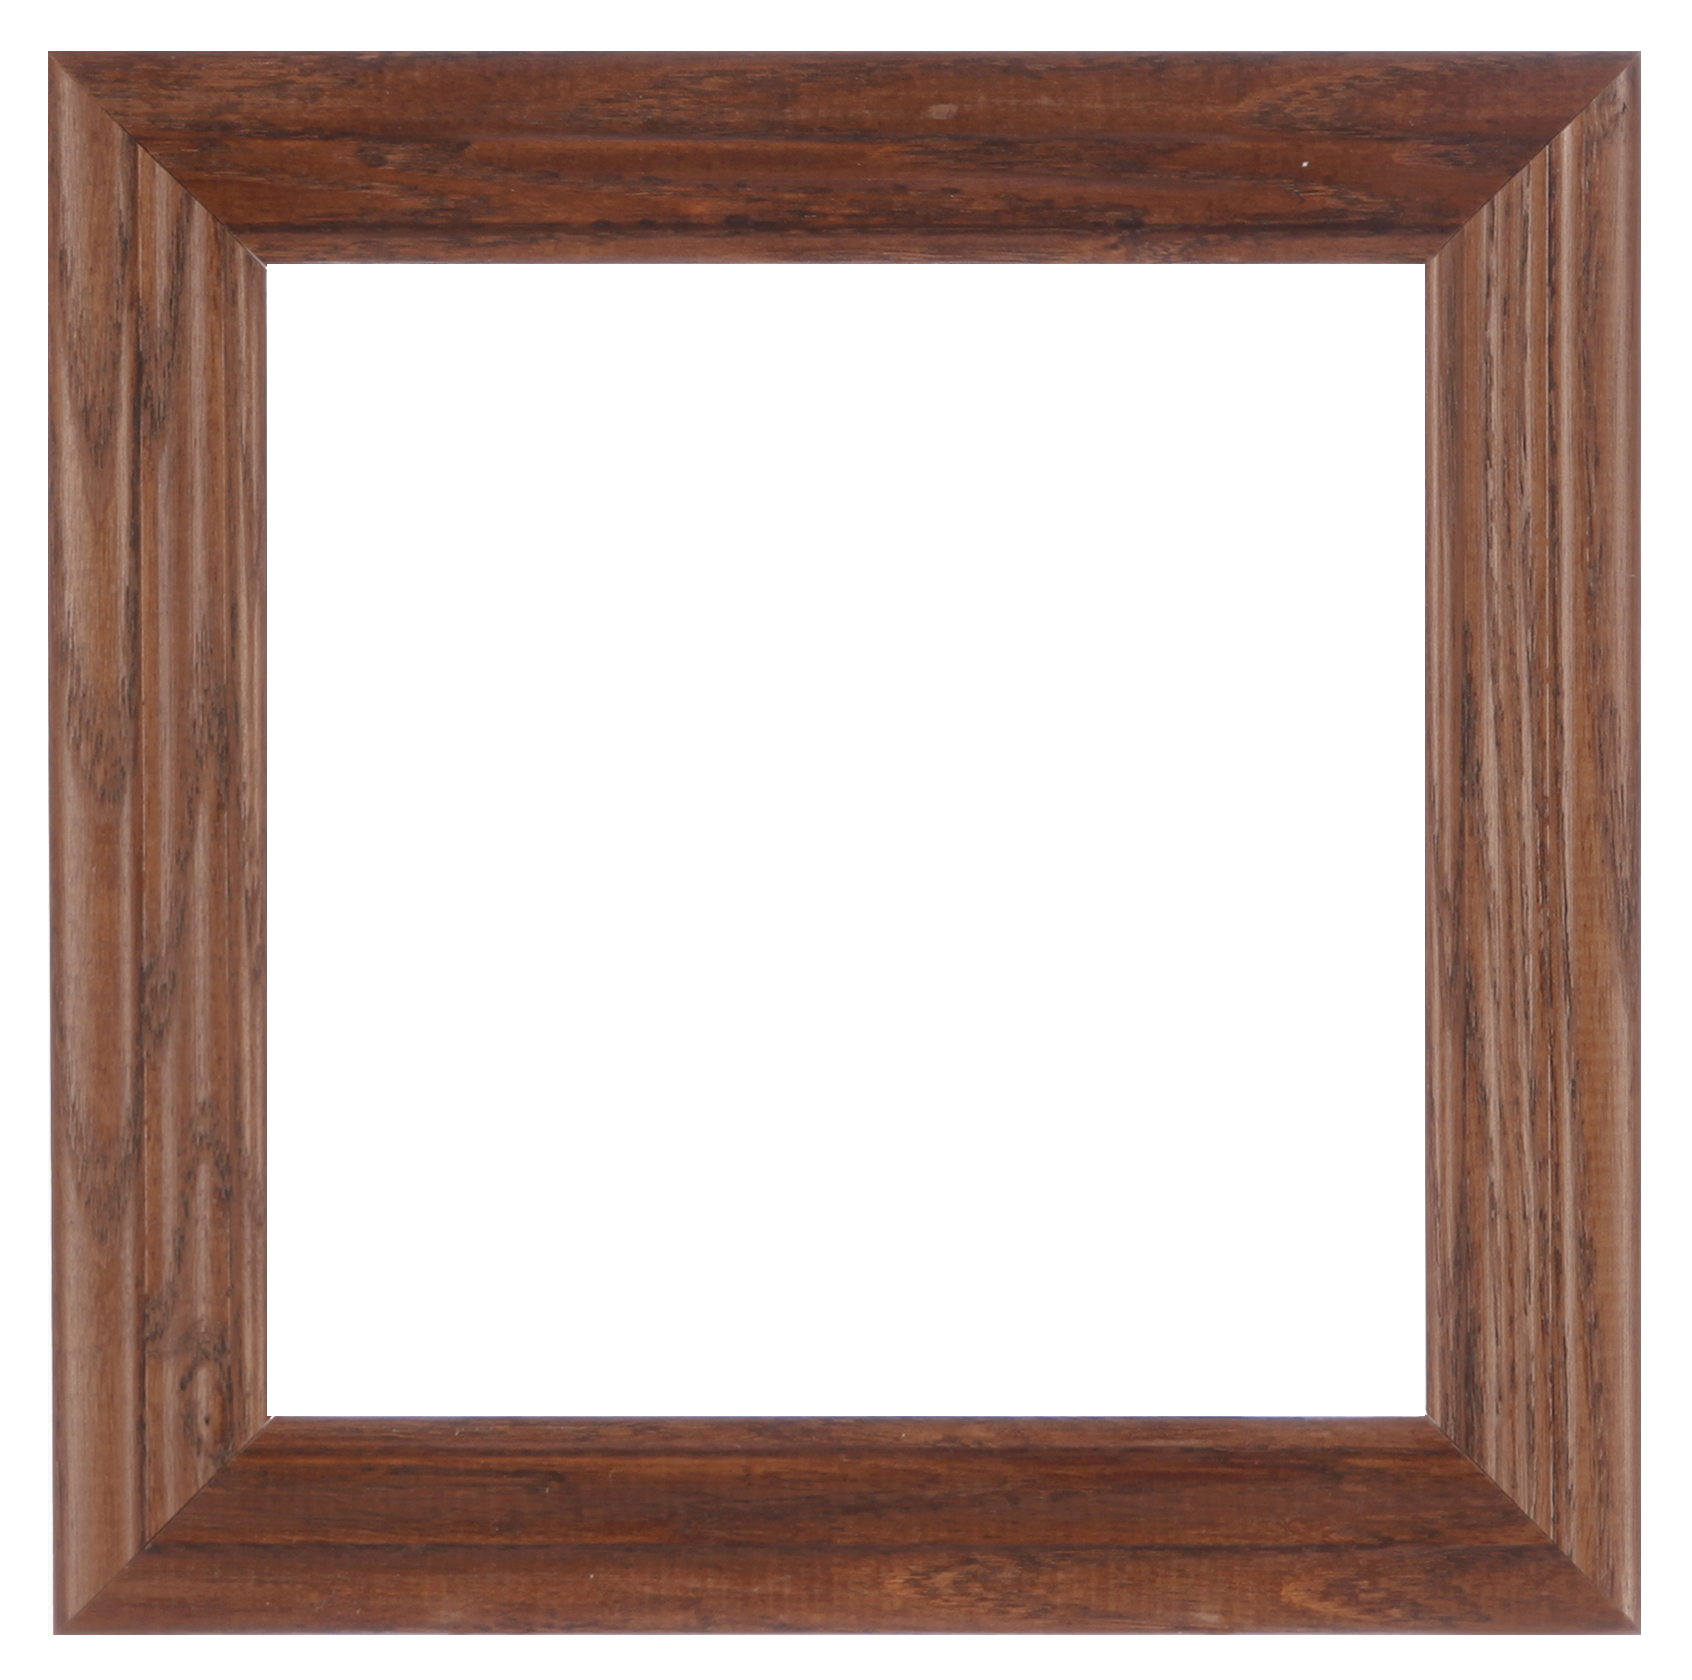 source wwwthedutchstorecom report dark wooden frame